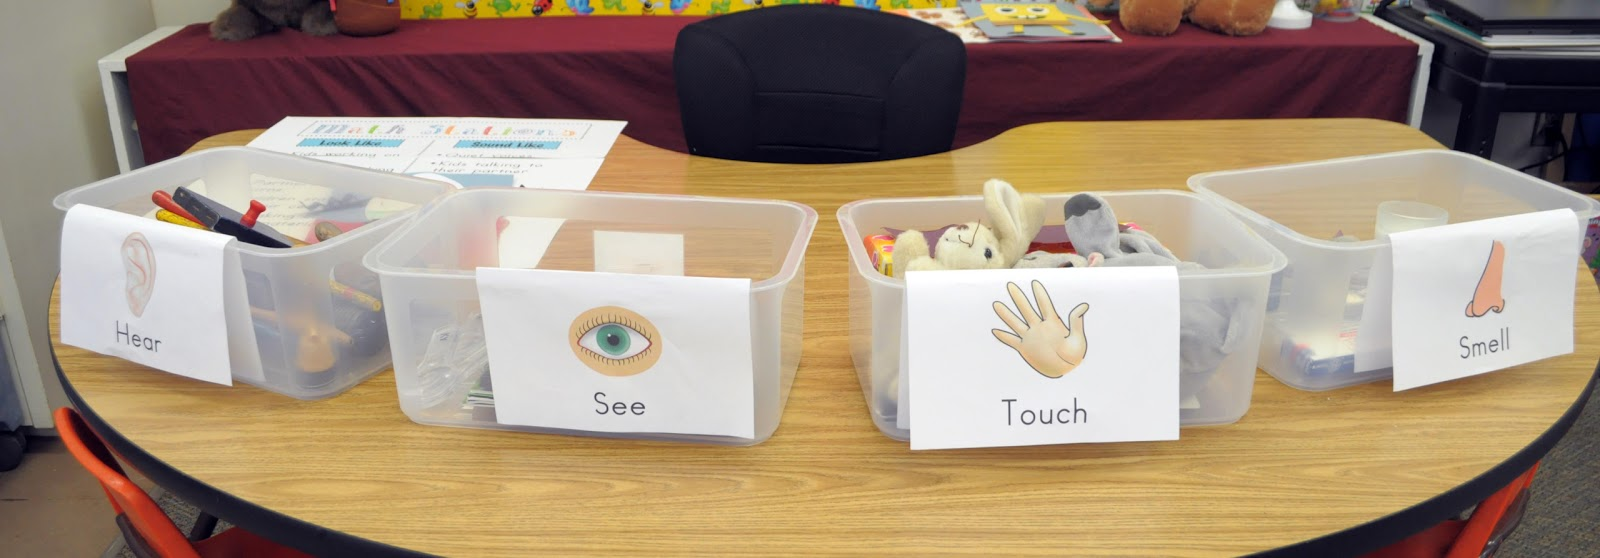 Five Senses Activity For First Grade - 4th grade science worksheets ...